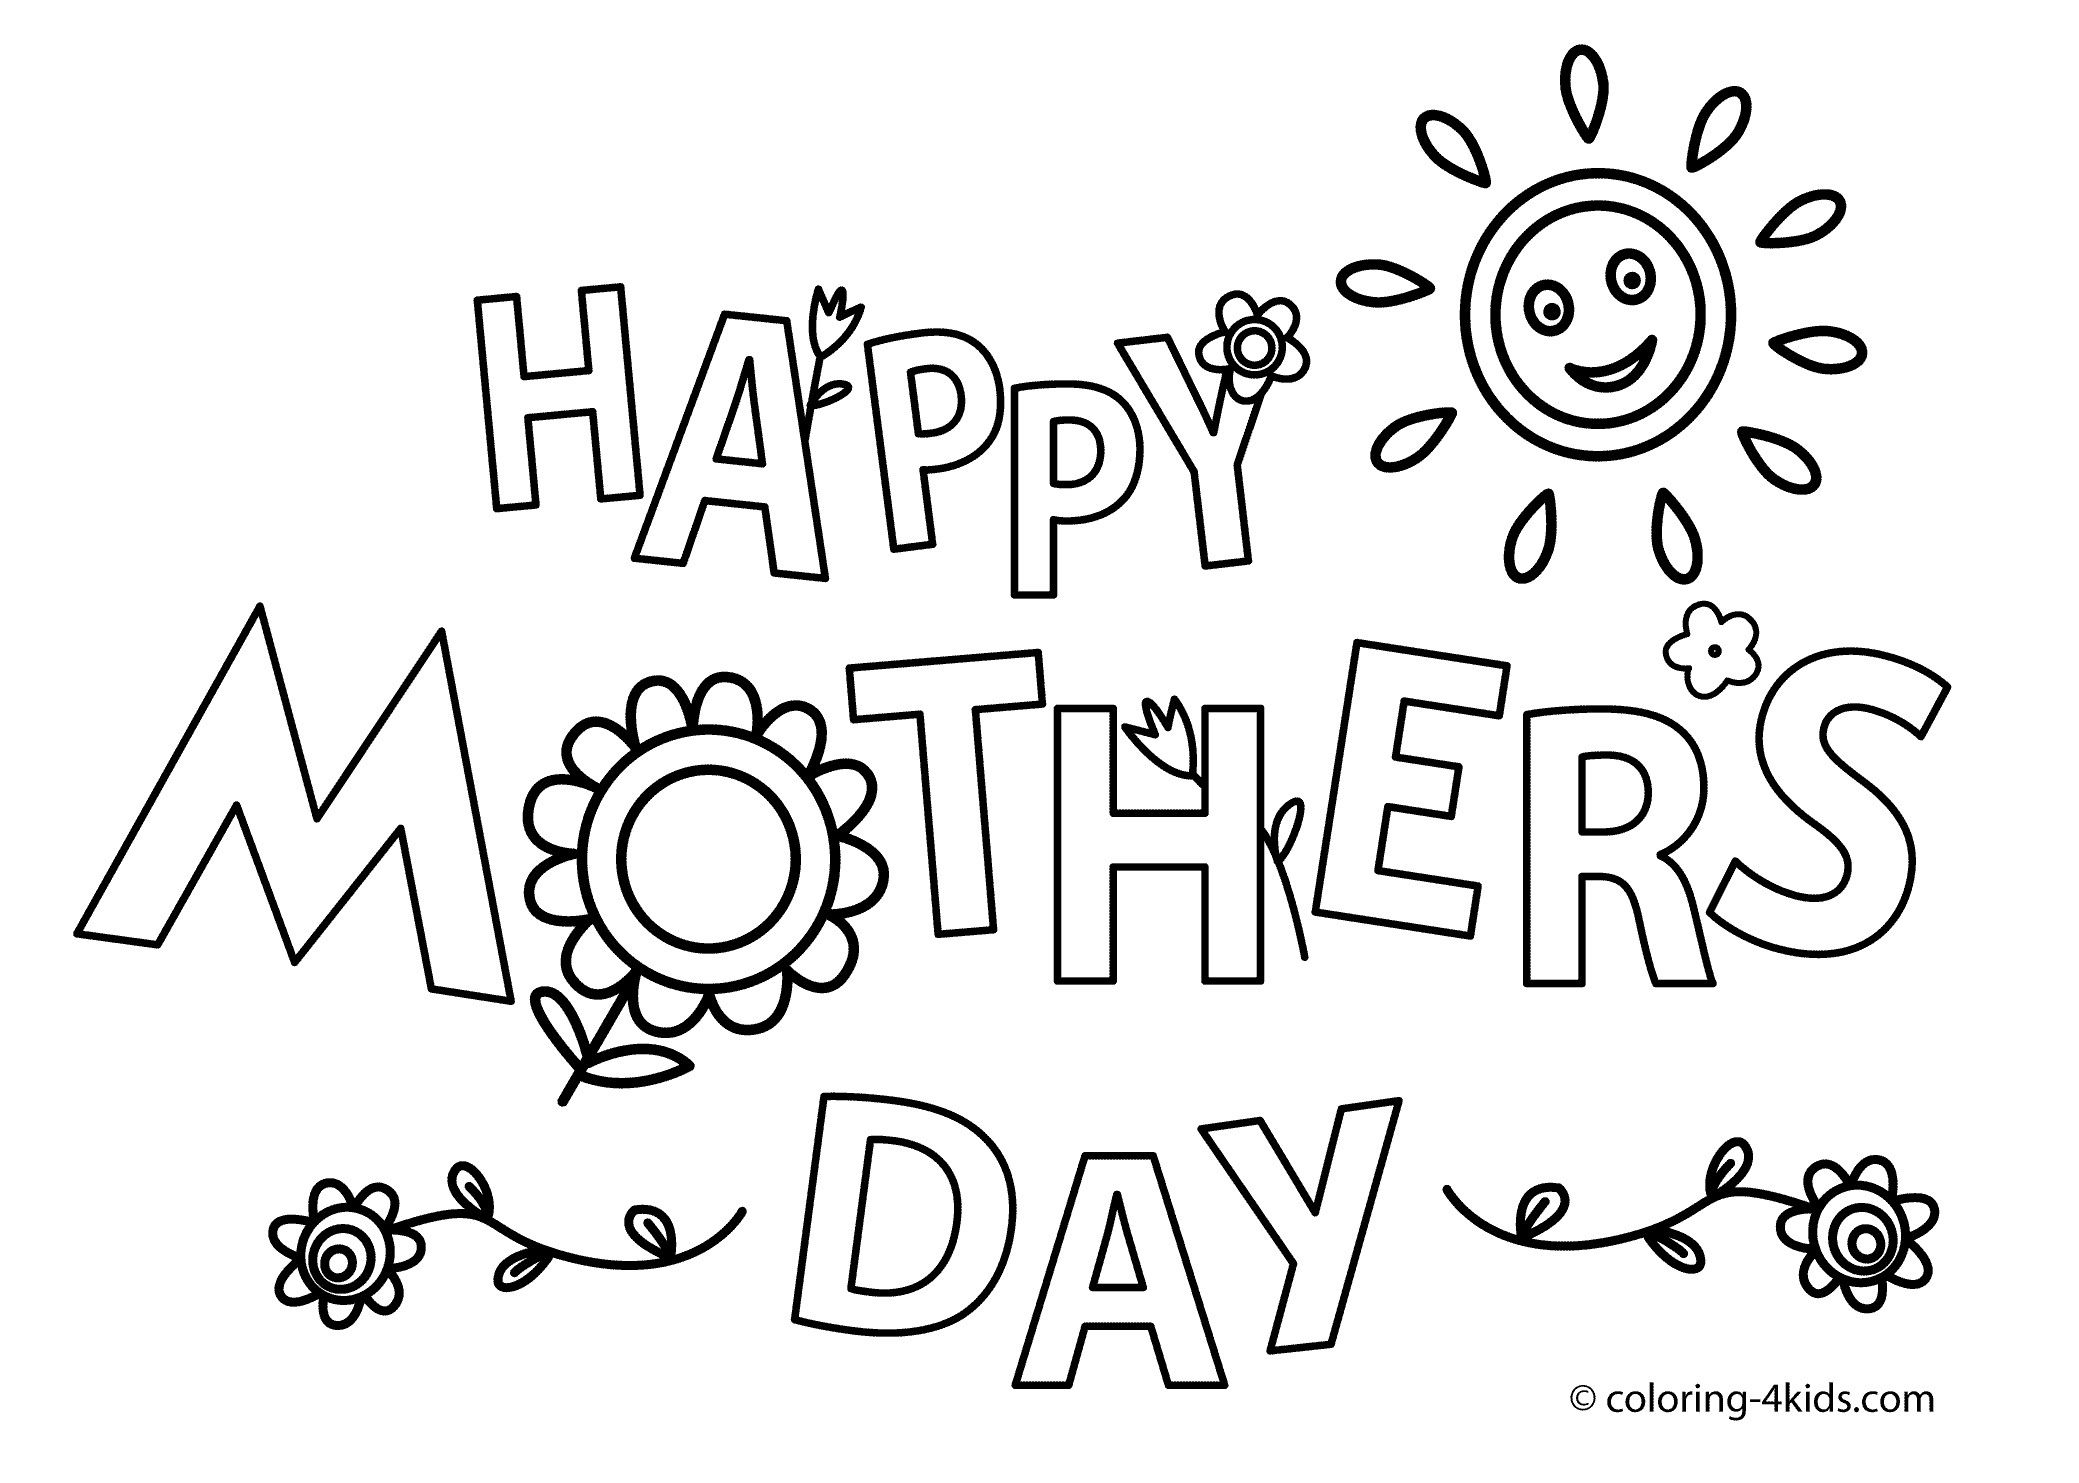 mothers day coloring pictures to print best of happy mother s day coloring pages for kids printable free of mothers day coloring pictures to print